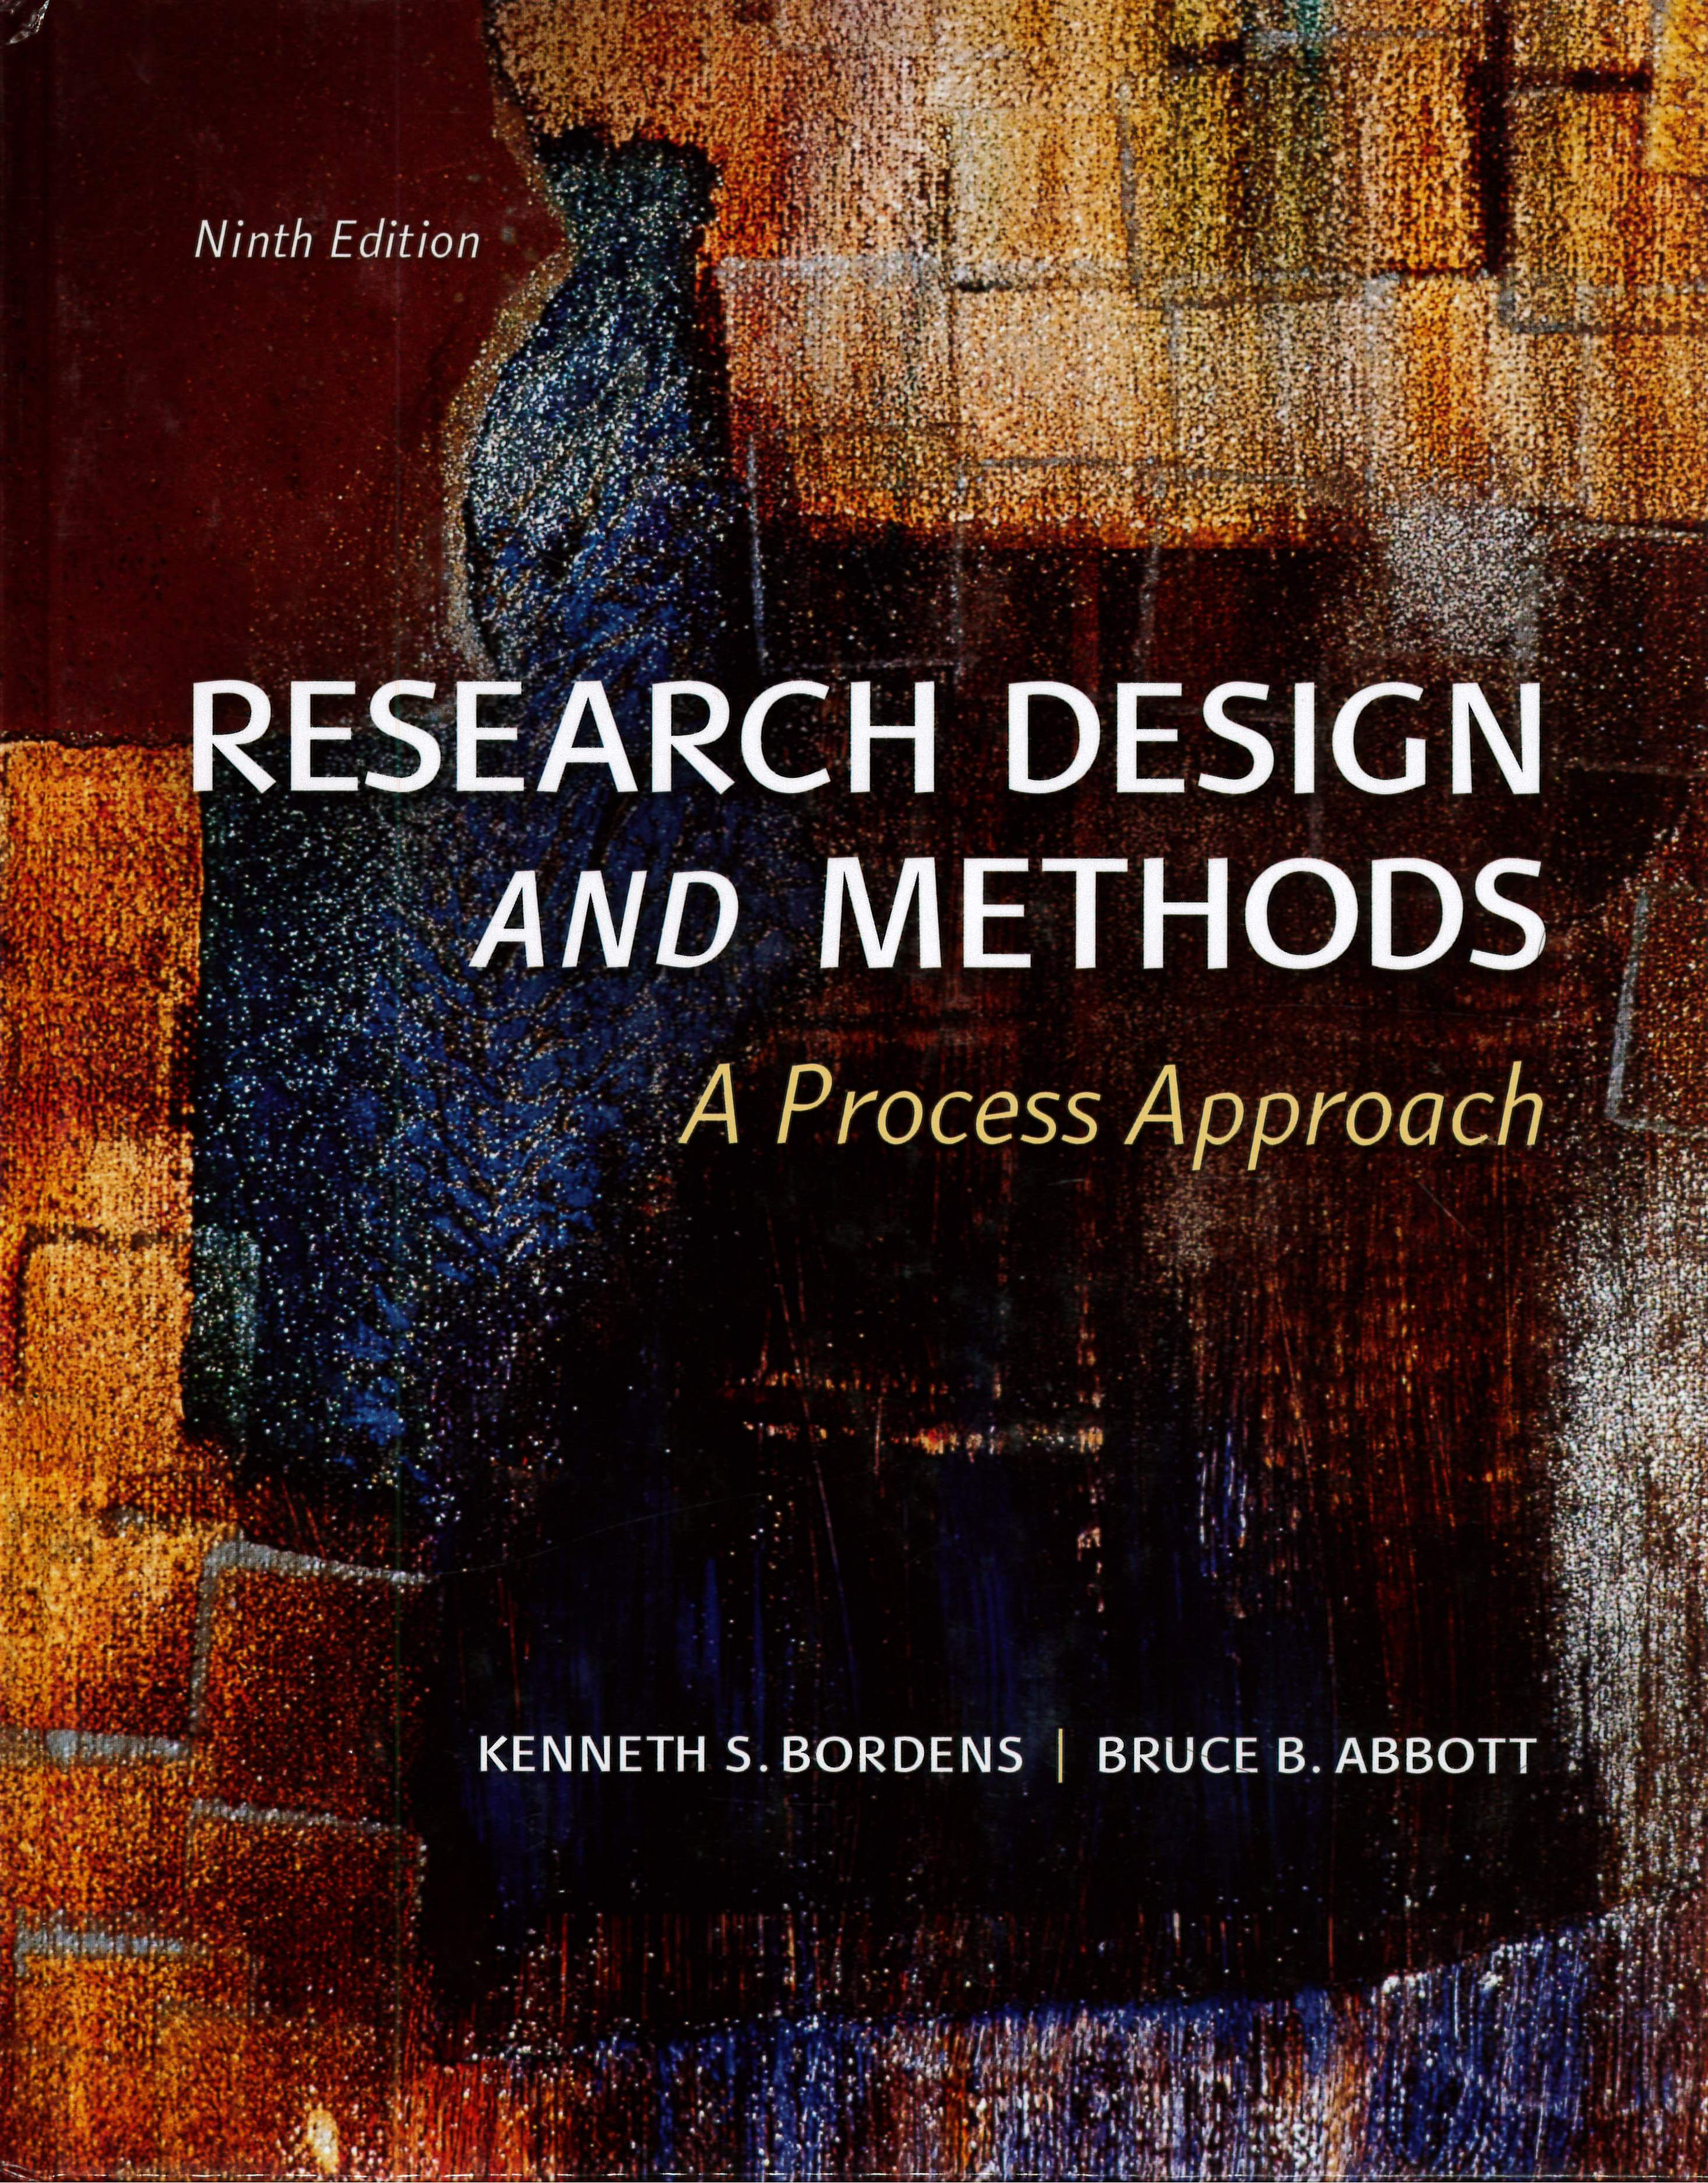 Research Design and Methods: A Process Approach 9/e